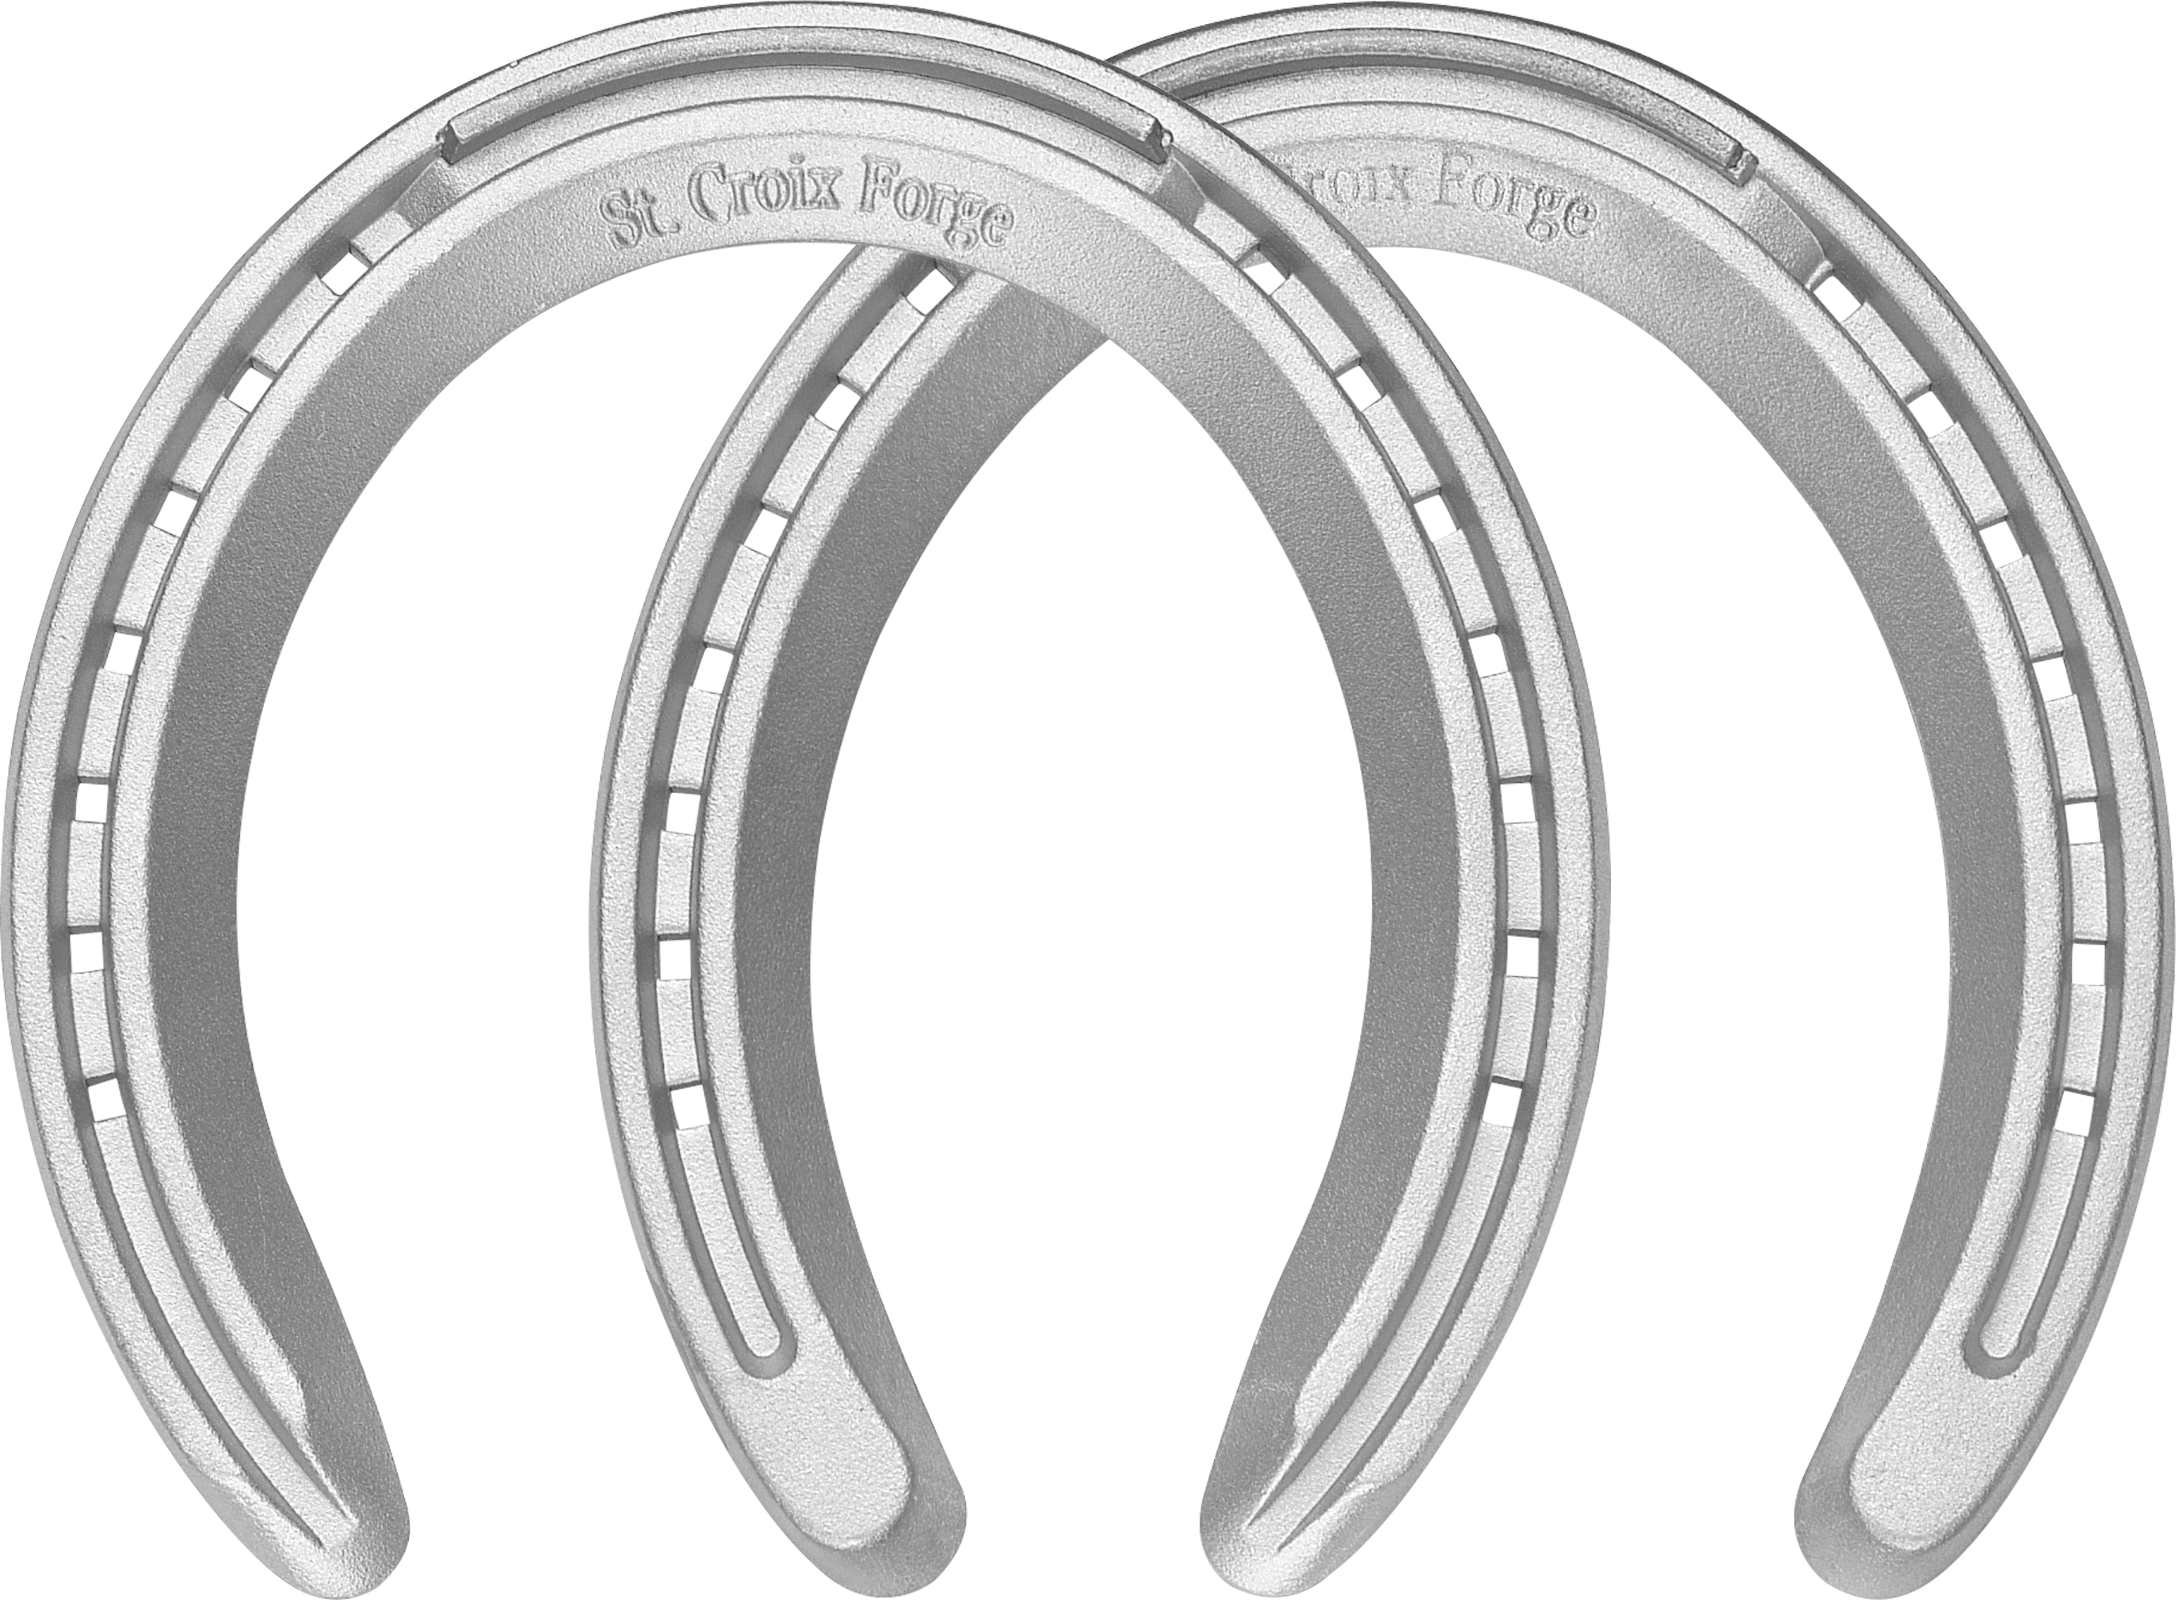 St. Croix Regular Toe horseshoes, front and hind, bottom view